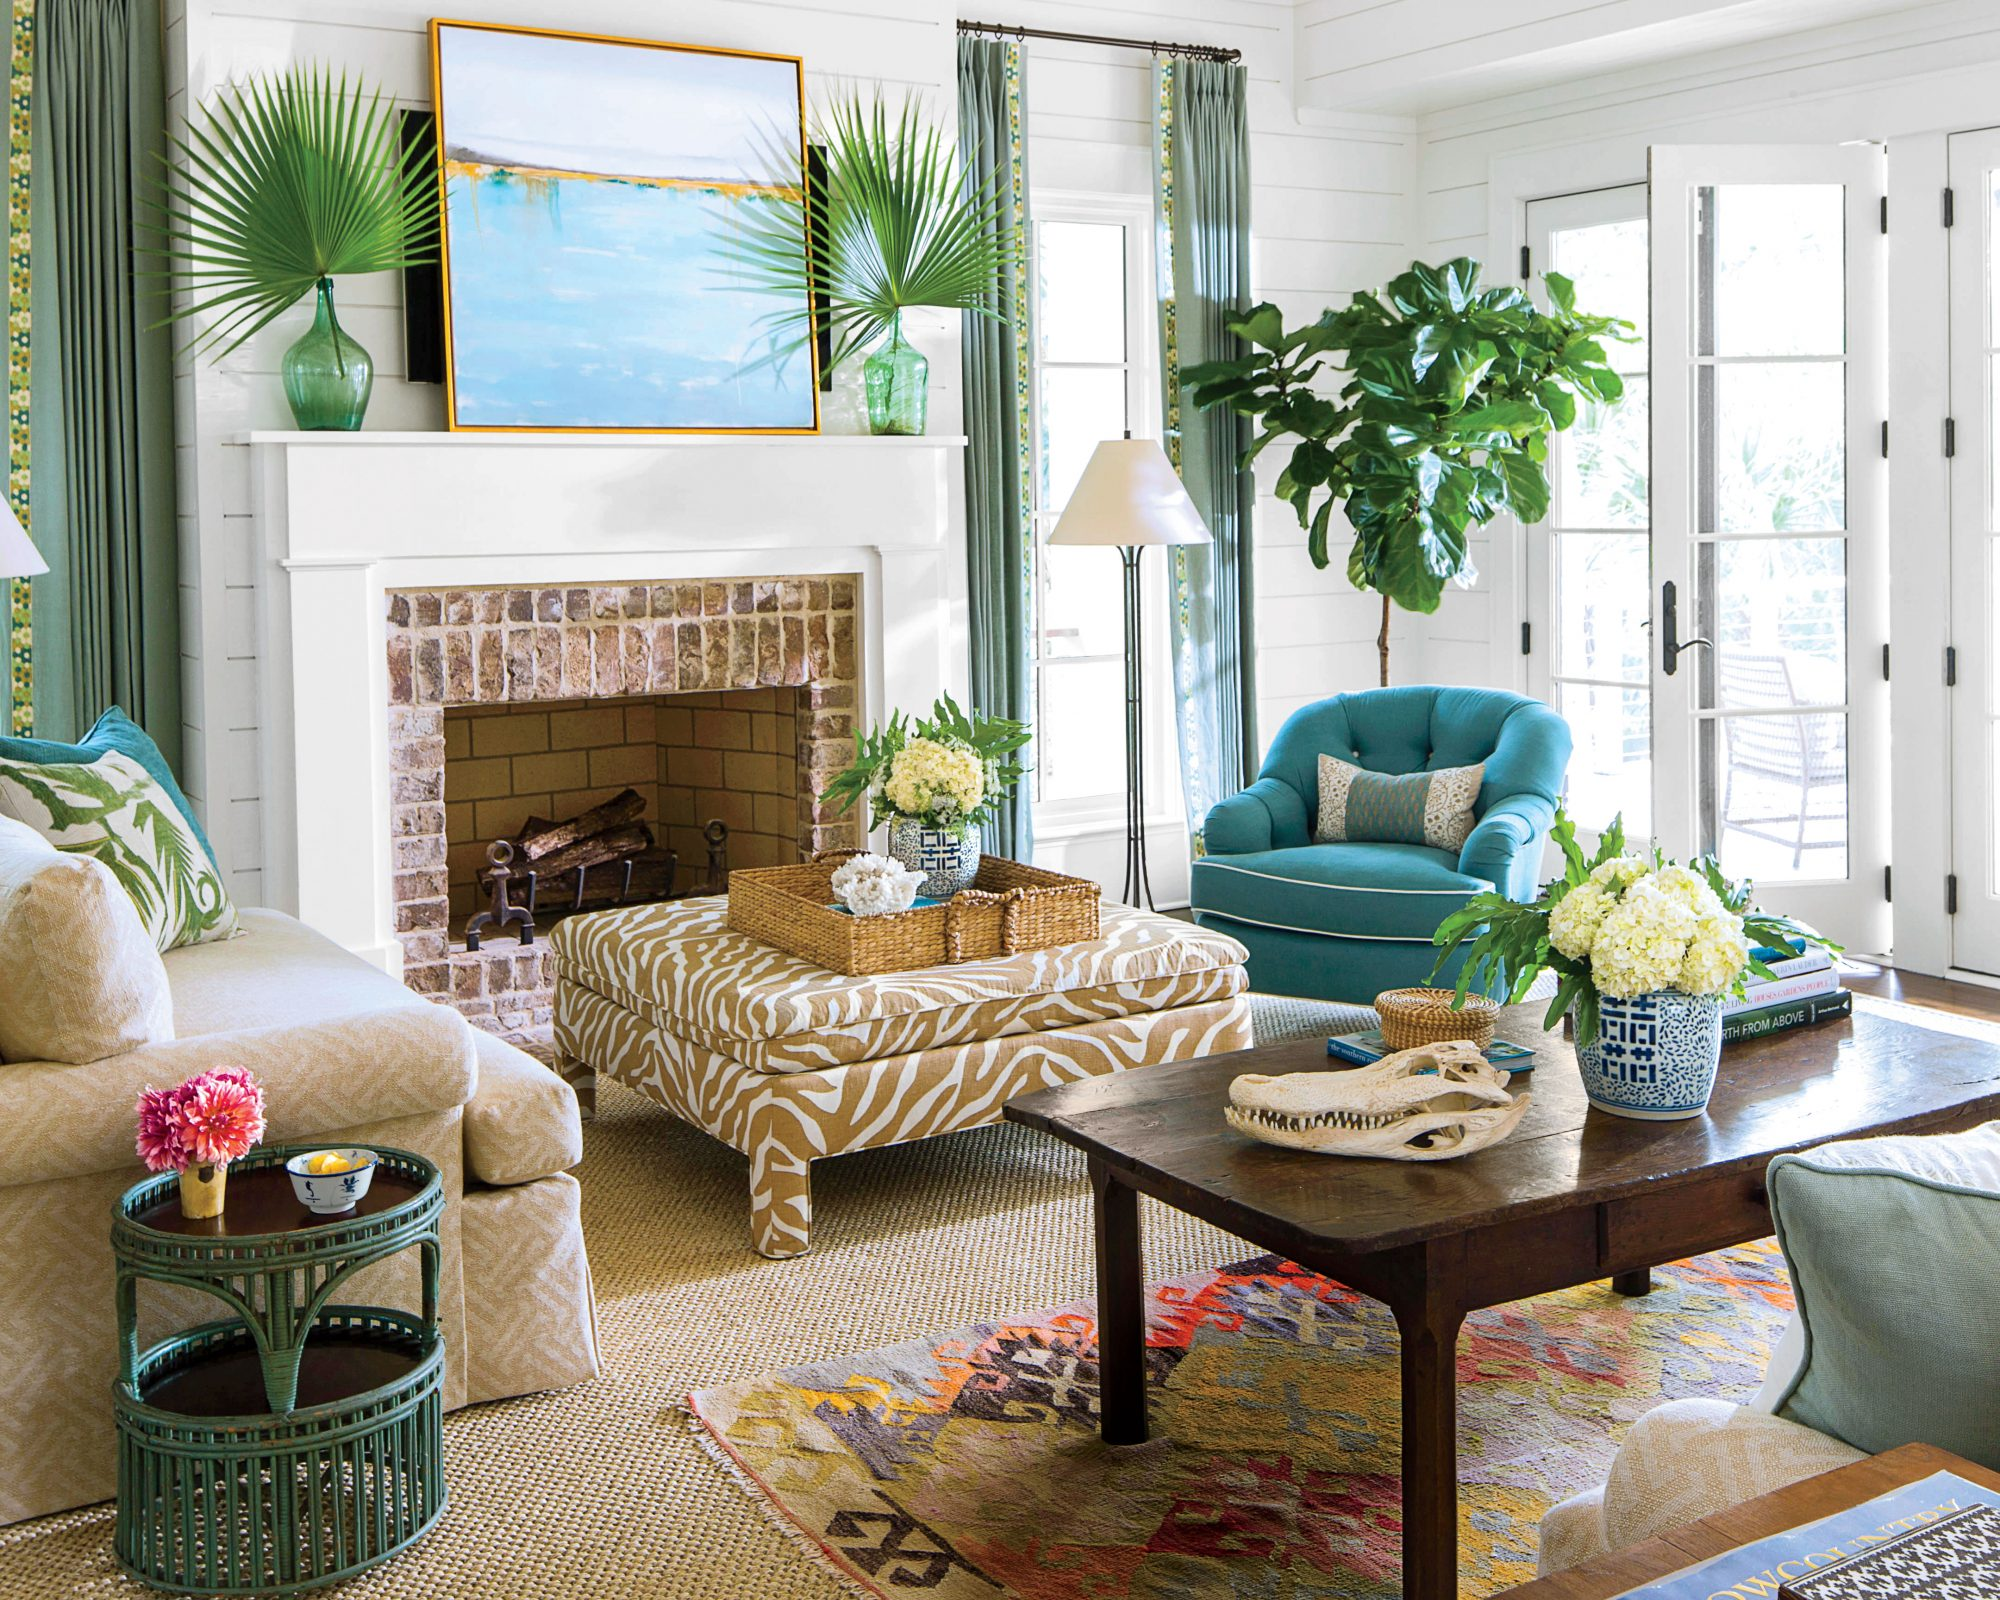 furniture for small living spaces. Coastal Lowcountry Living Room Furniture For Small Living Spaces